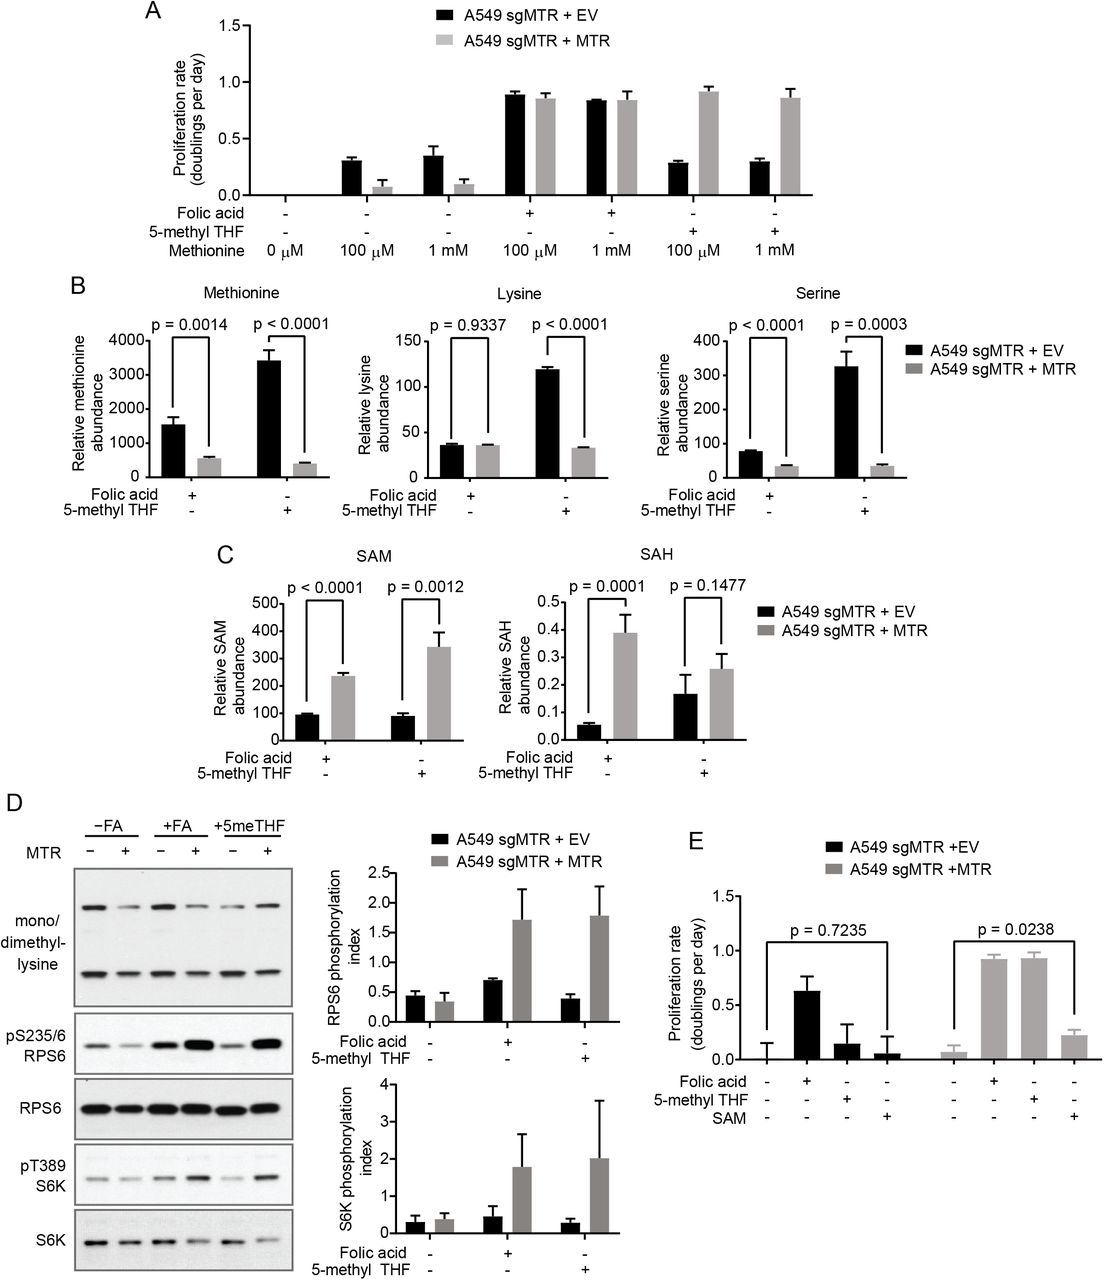 MTR knockout reduces SAM levels but not methionine levels. (A) Proliferation rates of A549 cells without (+EV) or with MTR expression (+MTR) cultured in the indicated folate with or without the addition of 1 mM methionine to supplement the 100 μM methionine present in <t>RPMI-1640</t> culture media. (B) LC/MS measurement of intracellular methionine, lysine, and serine levels in A549 cells without (+EV) or with MTR expression (+MTR) cultured for 4 days in the indicated folate. Data are normalized to the total protein content of cells in each condition and to an internal standard. (C) LC/MS measurement of intracellular SAM and SAH levels in A549 cells without (+EV) or with MTR expression (+MTR) cultured for 4 days in the indicated folate. Data are normalized to the total protein content of cells in each condition and to an internal standard. (D) Western blots to assess levels of mono- or dimethyl lysine-containing proteins, RPS6 phosphorylated at S235/6, total RPS6, S6K phosphorylated at T389, and total S6K in A549 cells without (+EV) or with MTR expression (+MTR). Phosphorylation index is defined as the phosphorylated protein antibody signal divided by the same total protein antibody signal in each lane. (E) Proliferation rates of A549 cells without (+EV) or with MTR expression (+MTR) cultured in the indicated folate with or without the addition of 1 mM SAM. Mean +/- SD is displayed for all panels. p values indicated on all panels are derived from two-tailed, unpaired Welch's t tests.